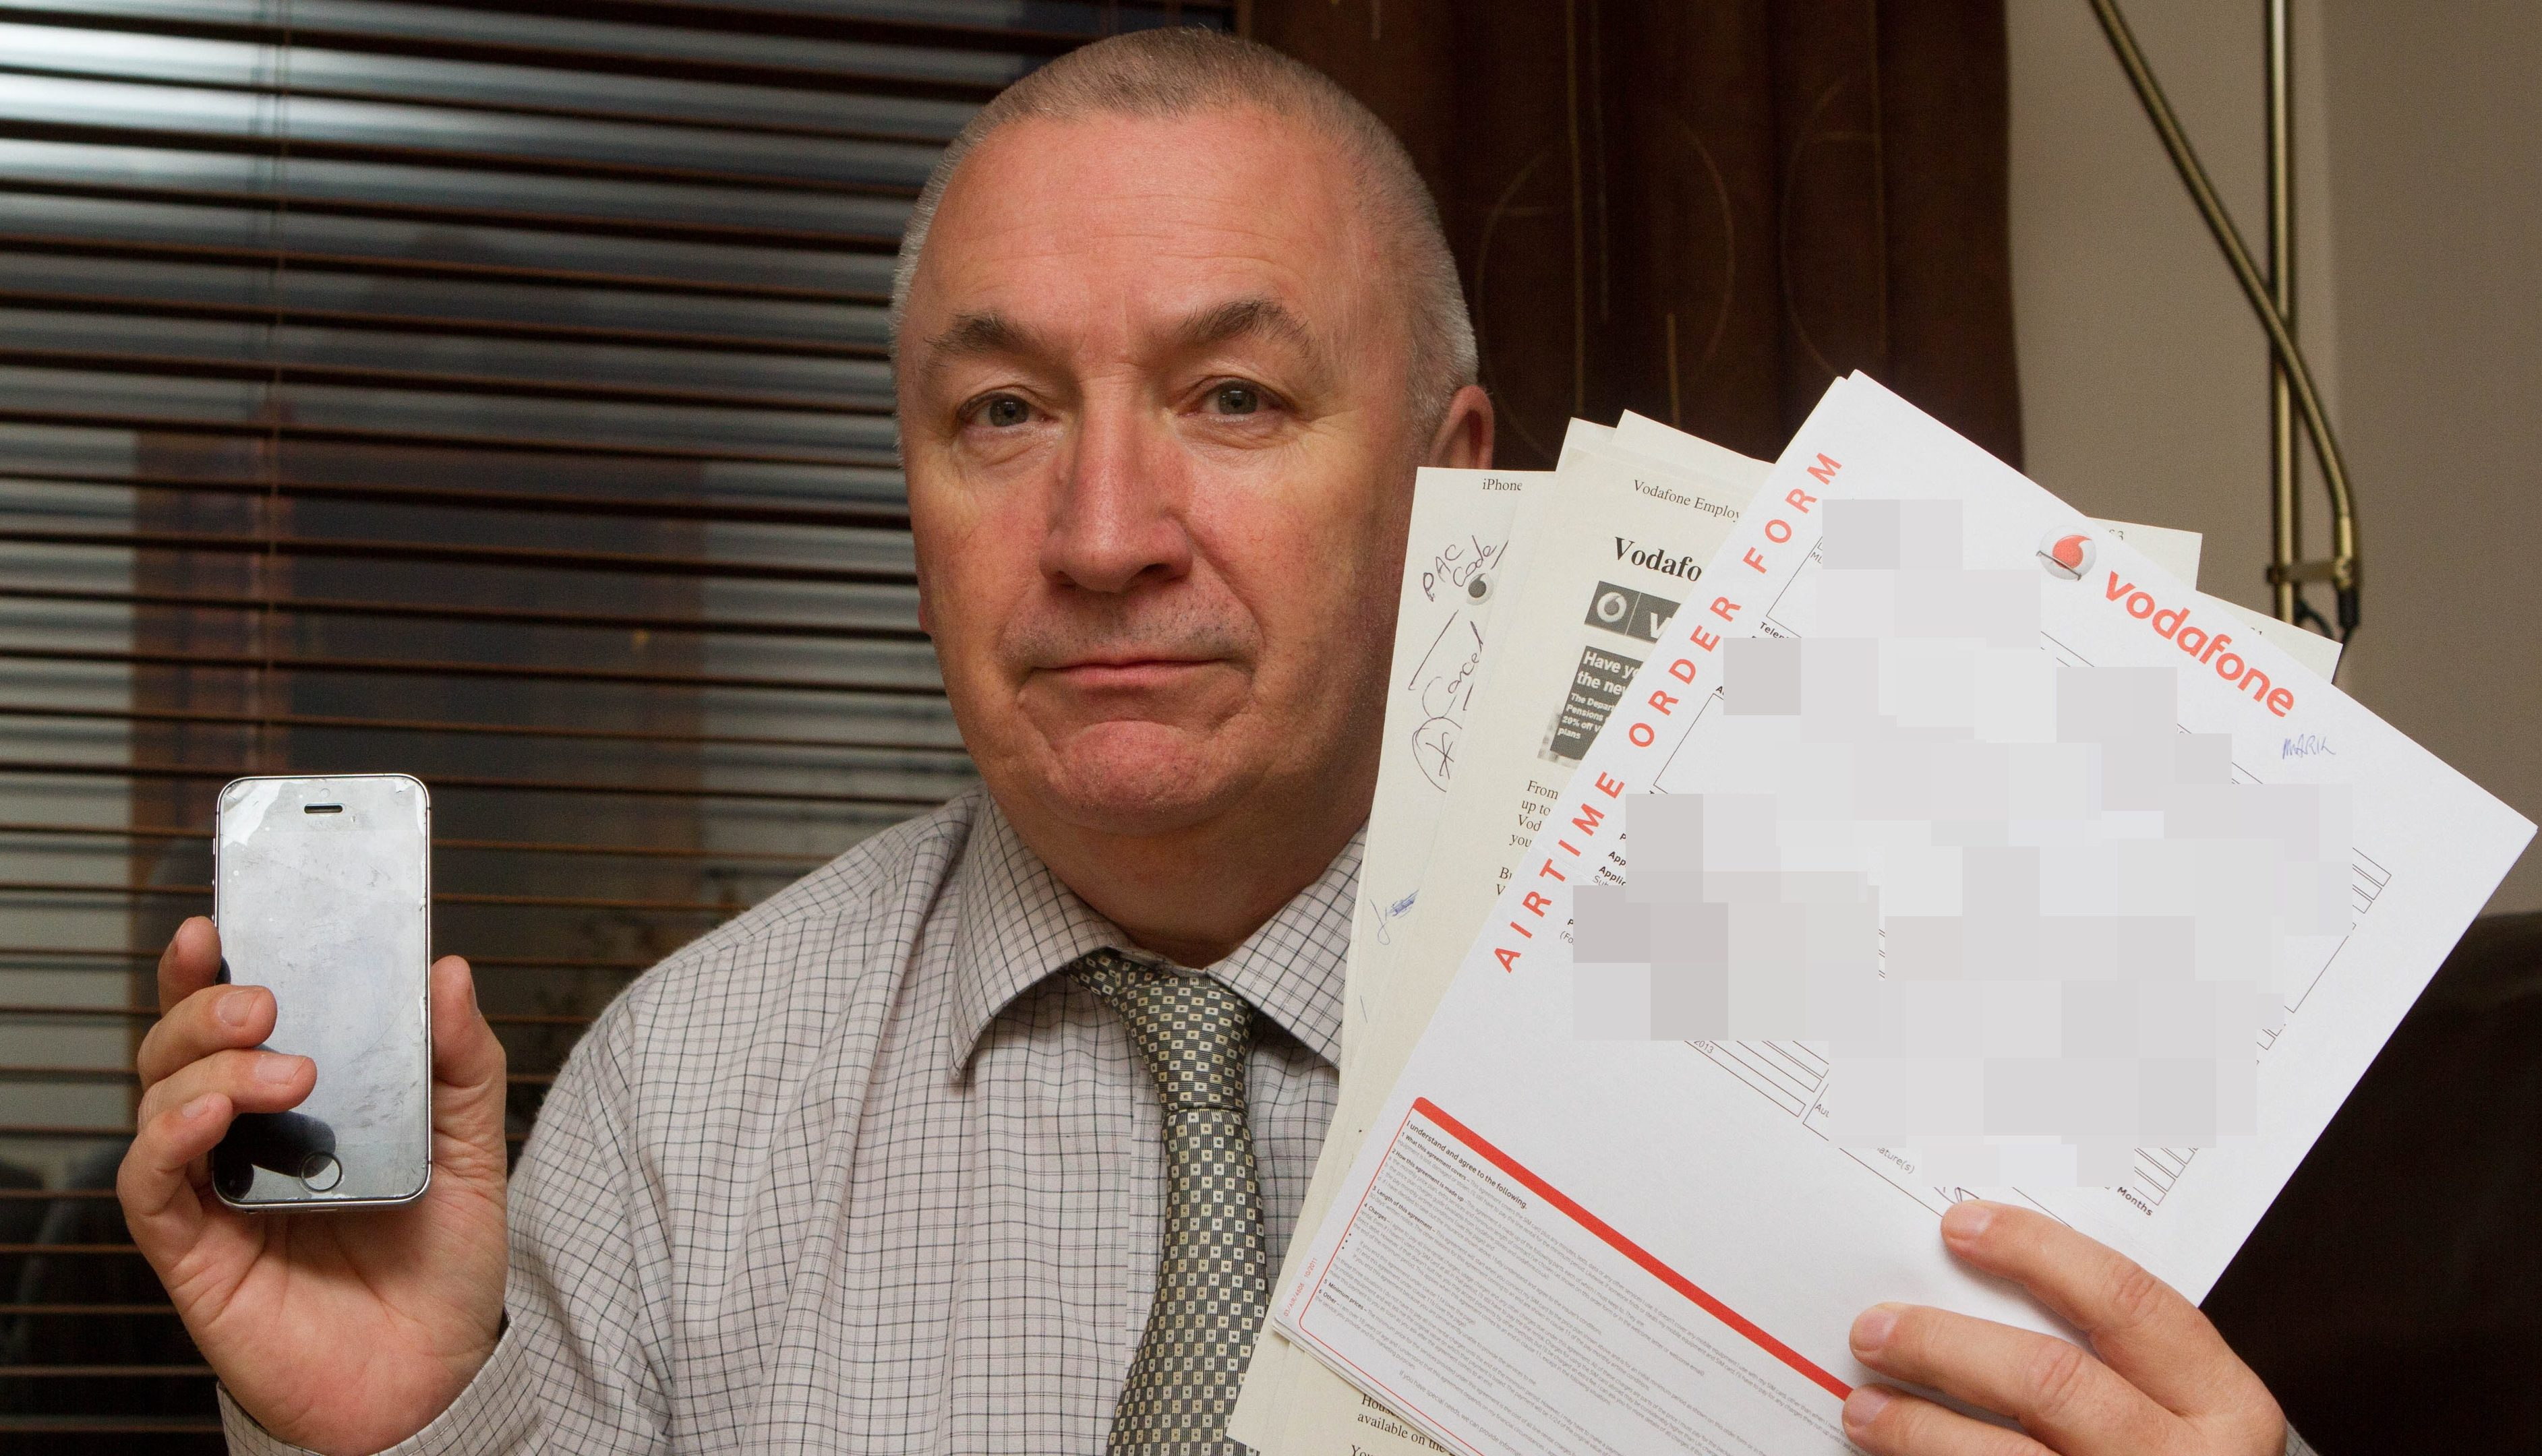 Lanark man Douglas Sinton had to enlist the help of The Sunday Post's Raw Deal team in a billing dispute with Vodafone. Now the firm has been fined for serious customer service failings dating from 2013.